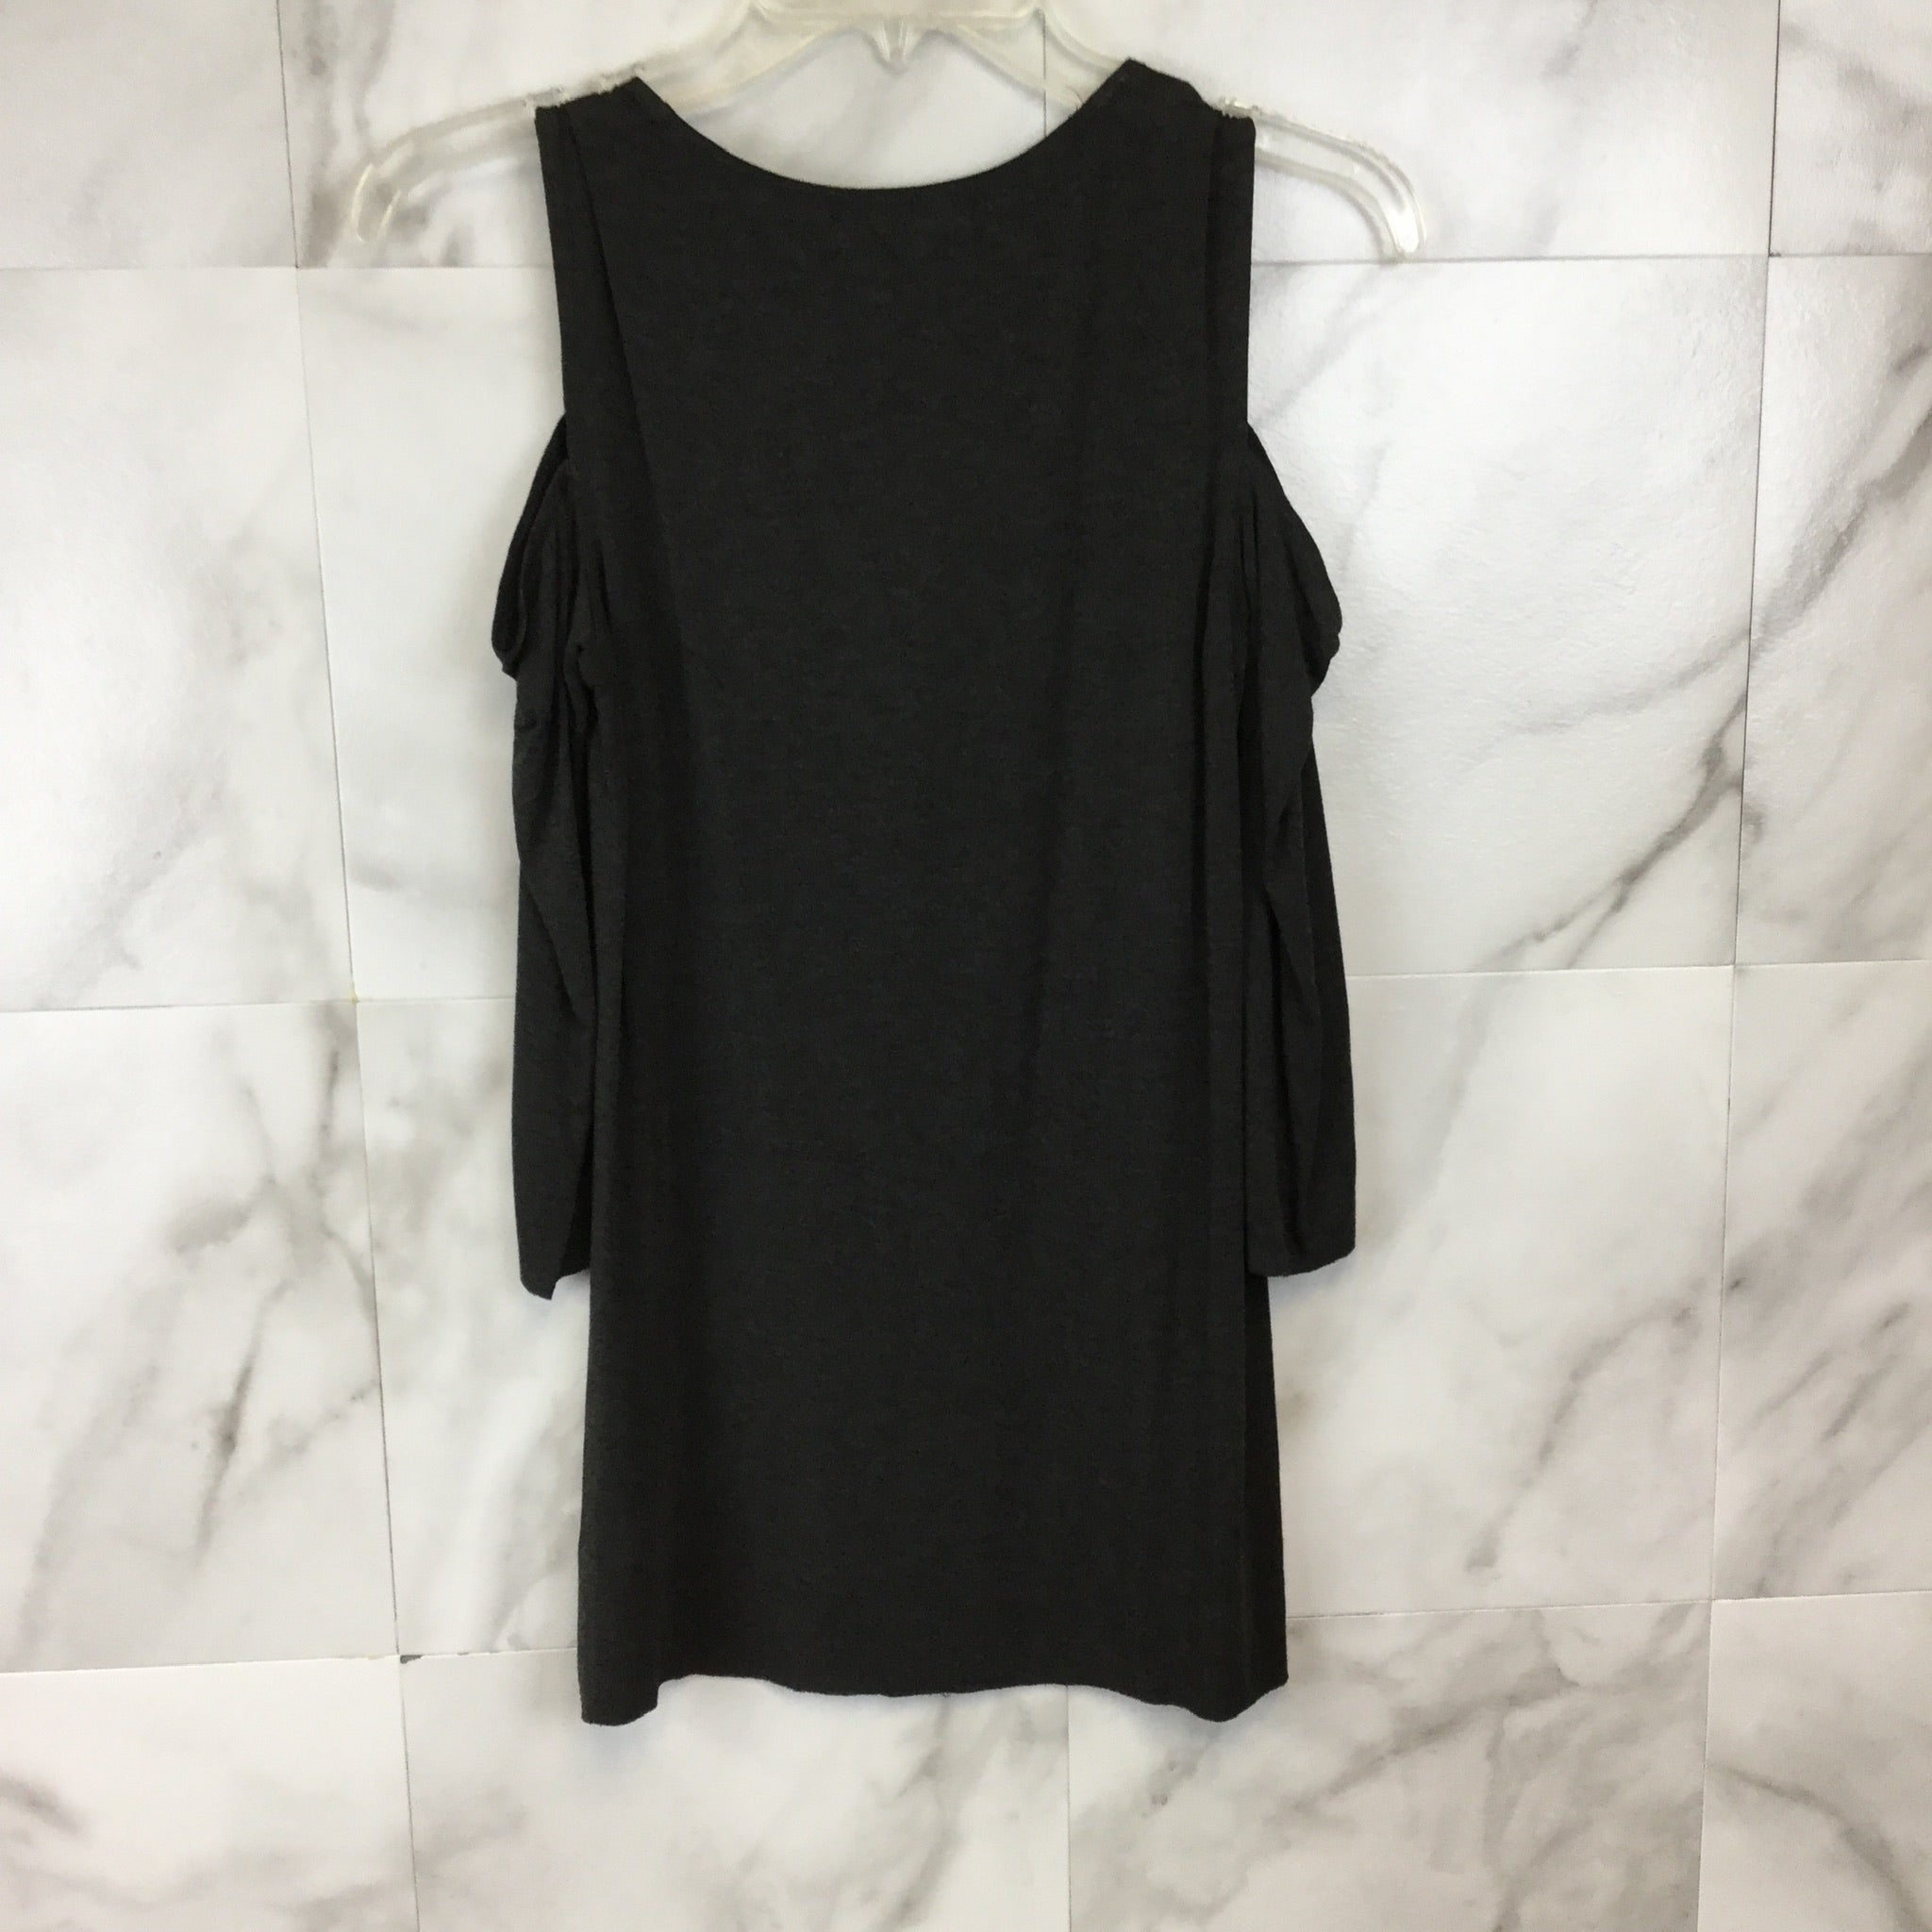 Bailey 44 Deneuve Cold Shoulder Top - Size M